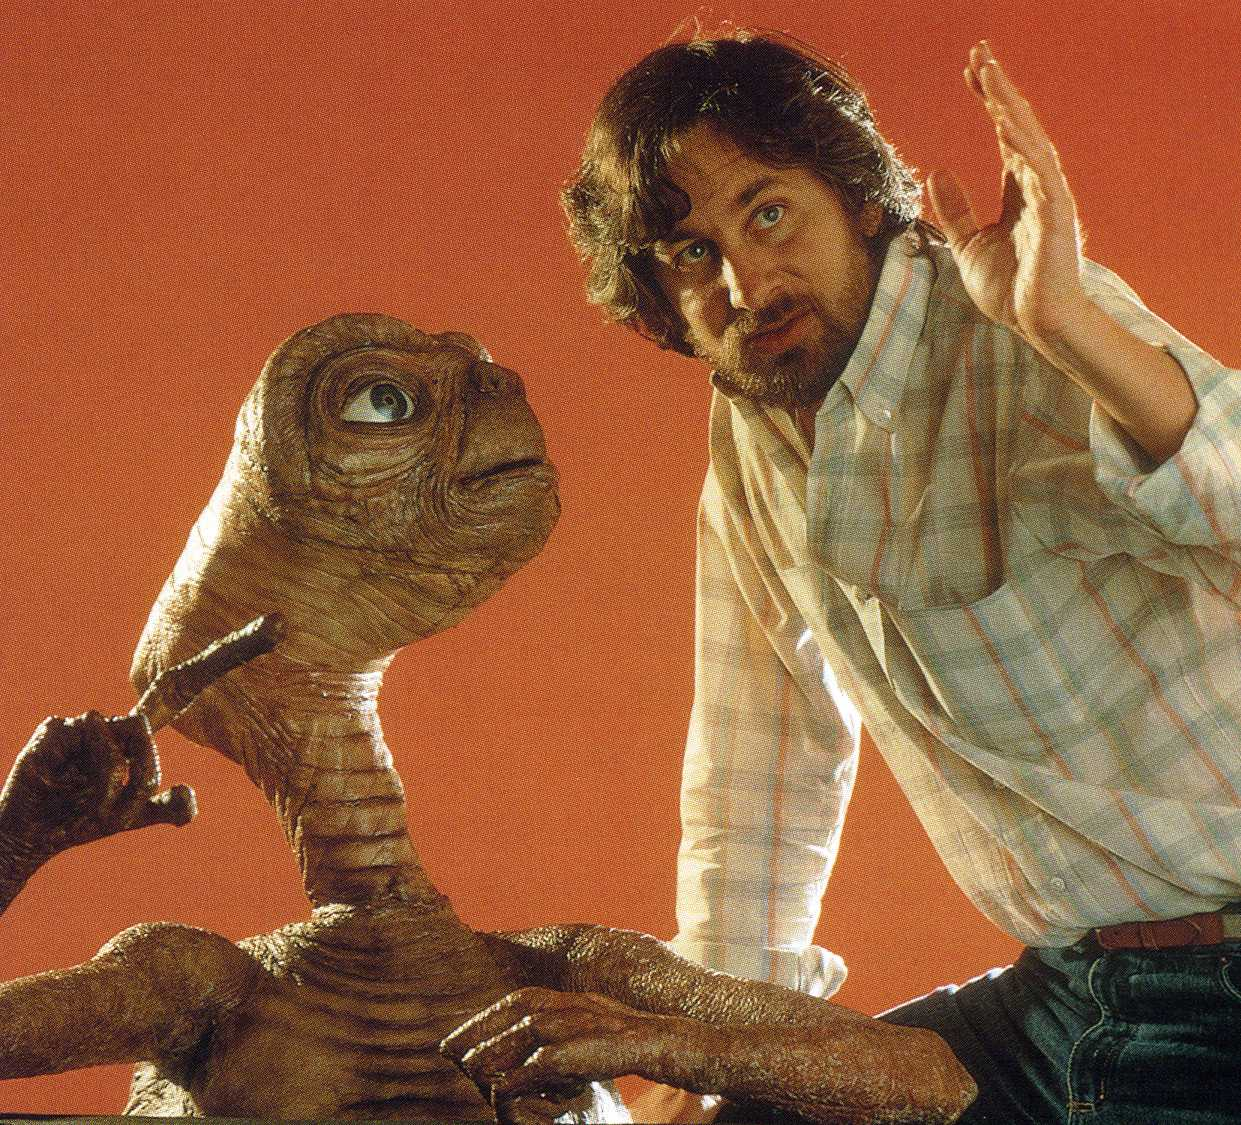 Steven Spielberg with E.T., one of his greatest 80s creations.